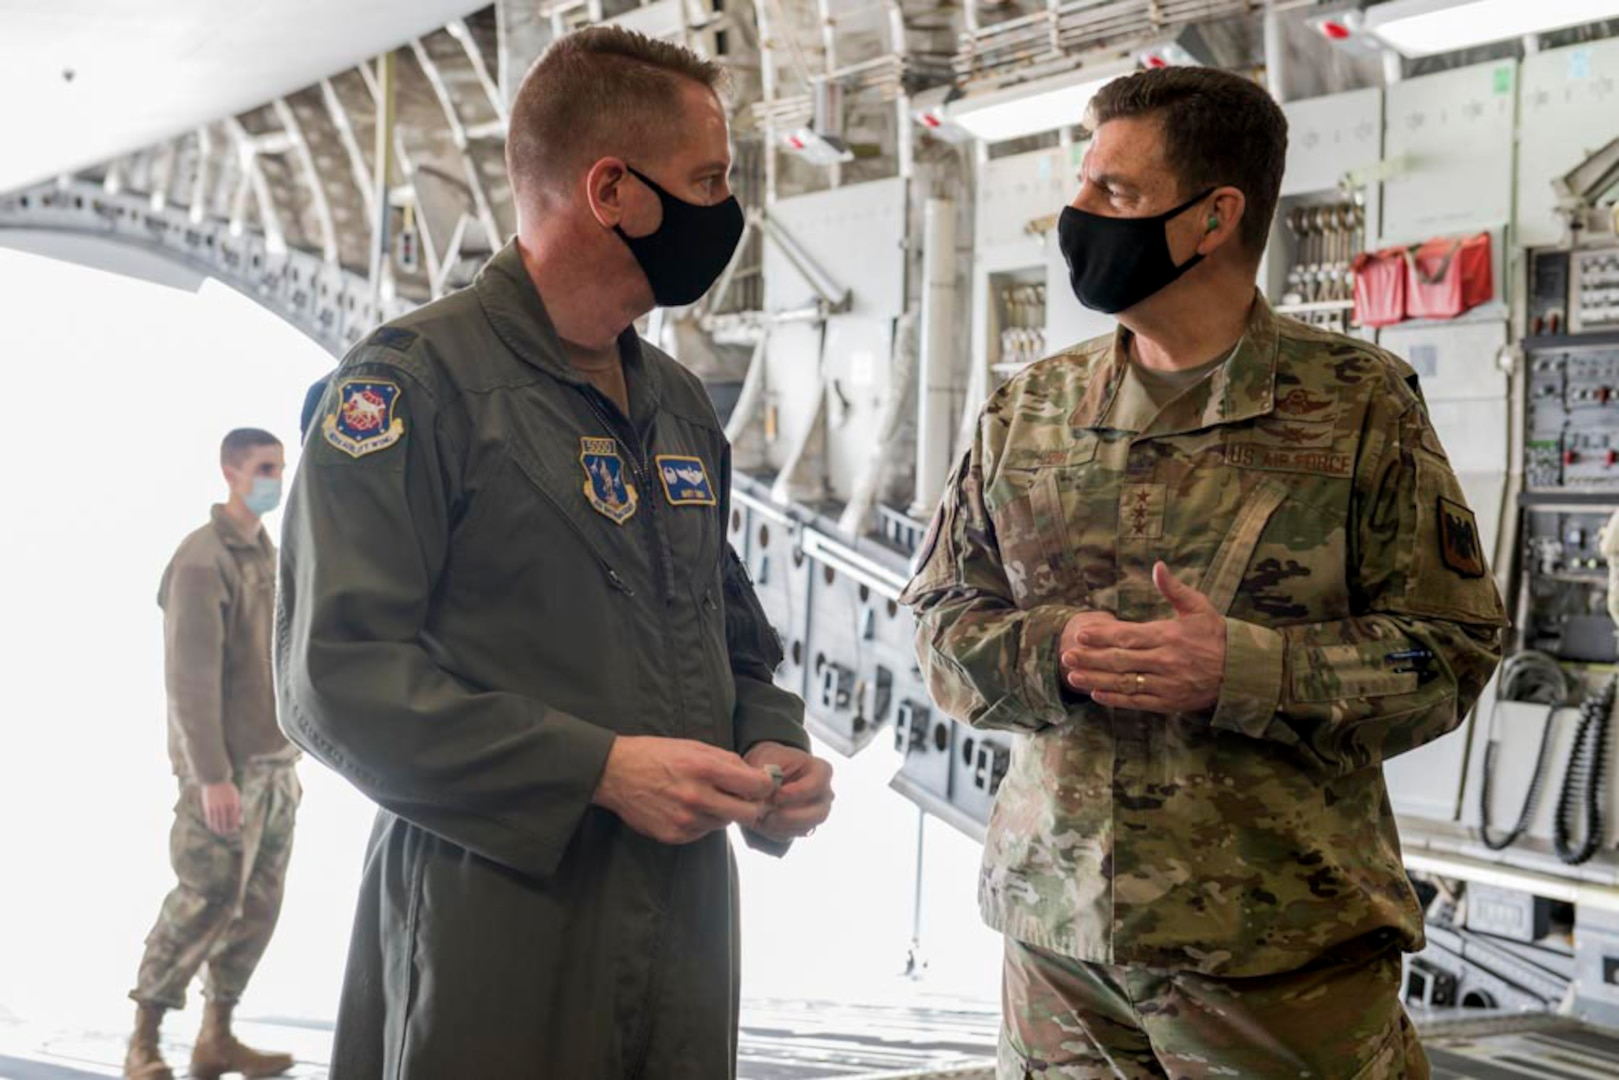 U.S. Air Force Col. Marty Timko, left, wing commander, 167th Airlift Wing, West Virginia National Guard, and Lt. Gen. Michael A. Loh, director, Air National Guard, speak in the cargo area of a C-17 Globemaster III aircraft during Loh's visit at Shepherd Field Air National Guard Base in Martinsburg, West Virginia, March 9, 2021. During his visit, Loh received updates on the unit's current operations and response to the COVID-19 pandemic